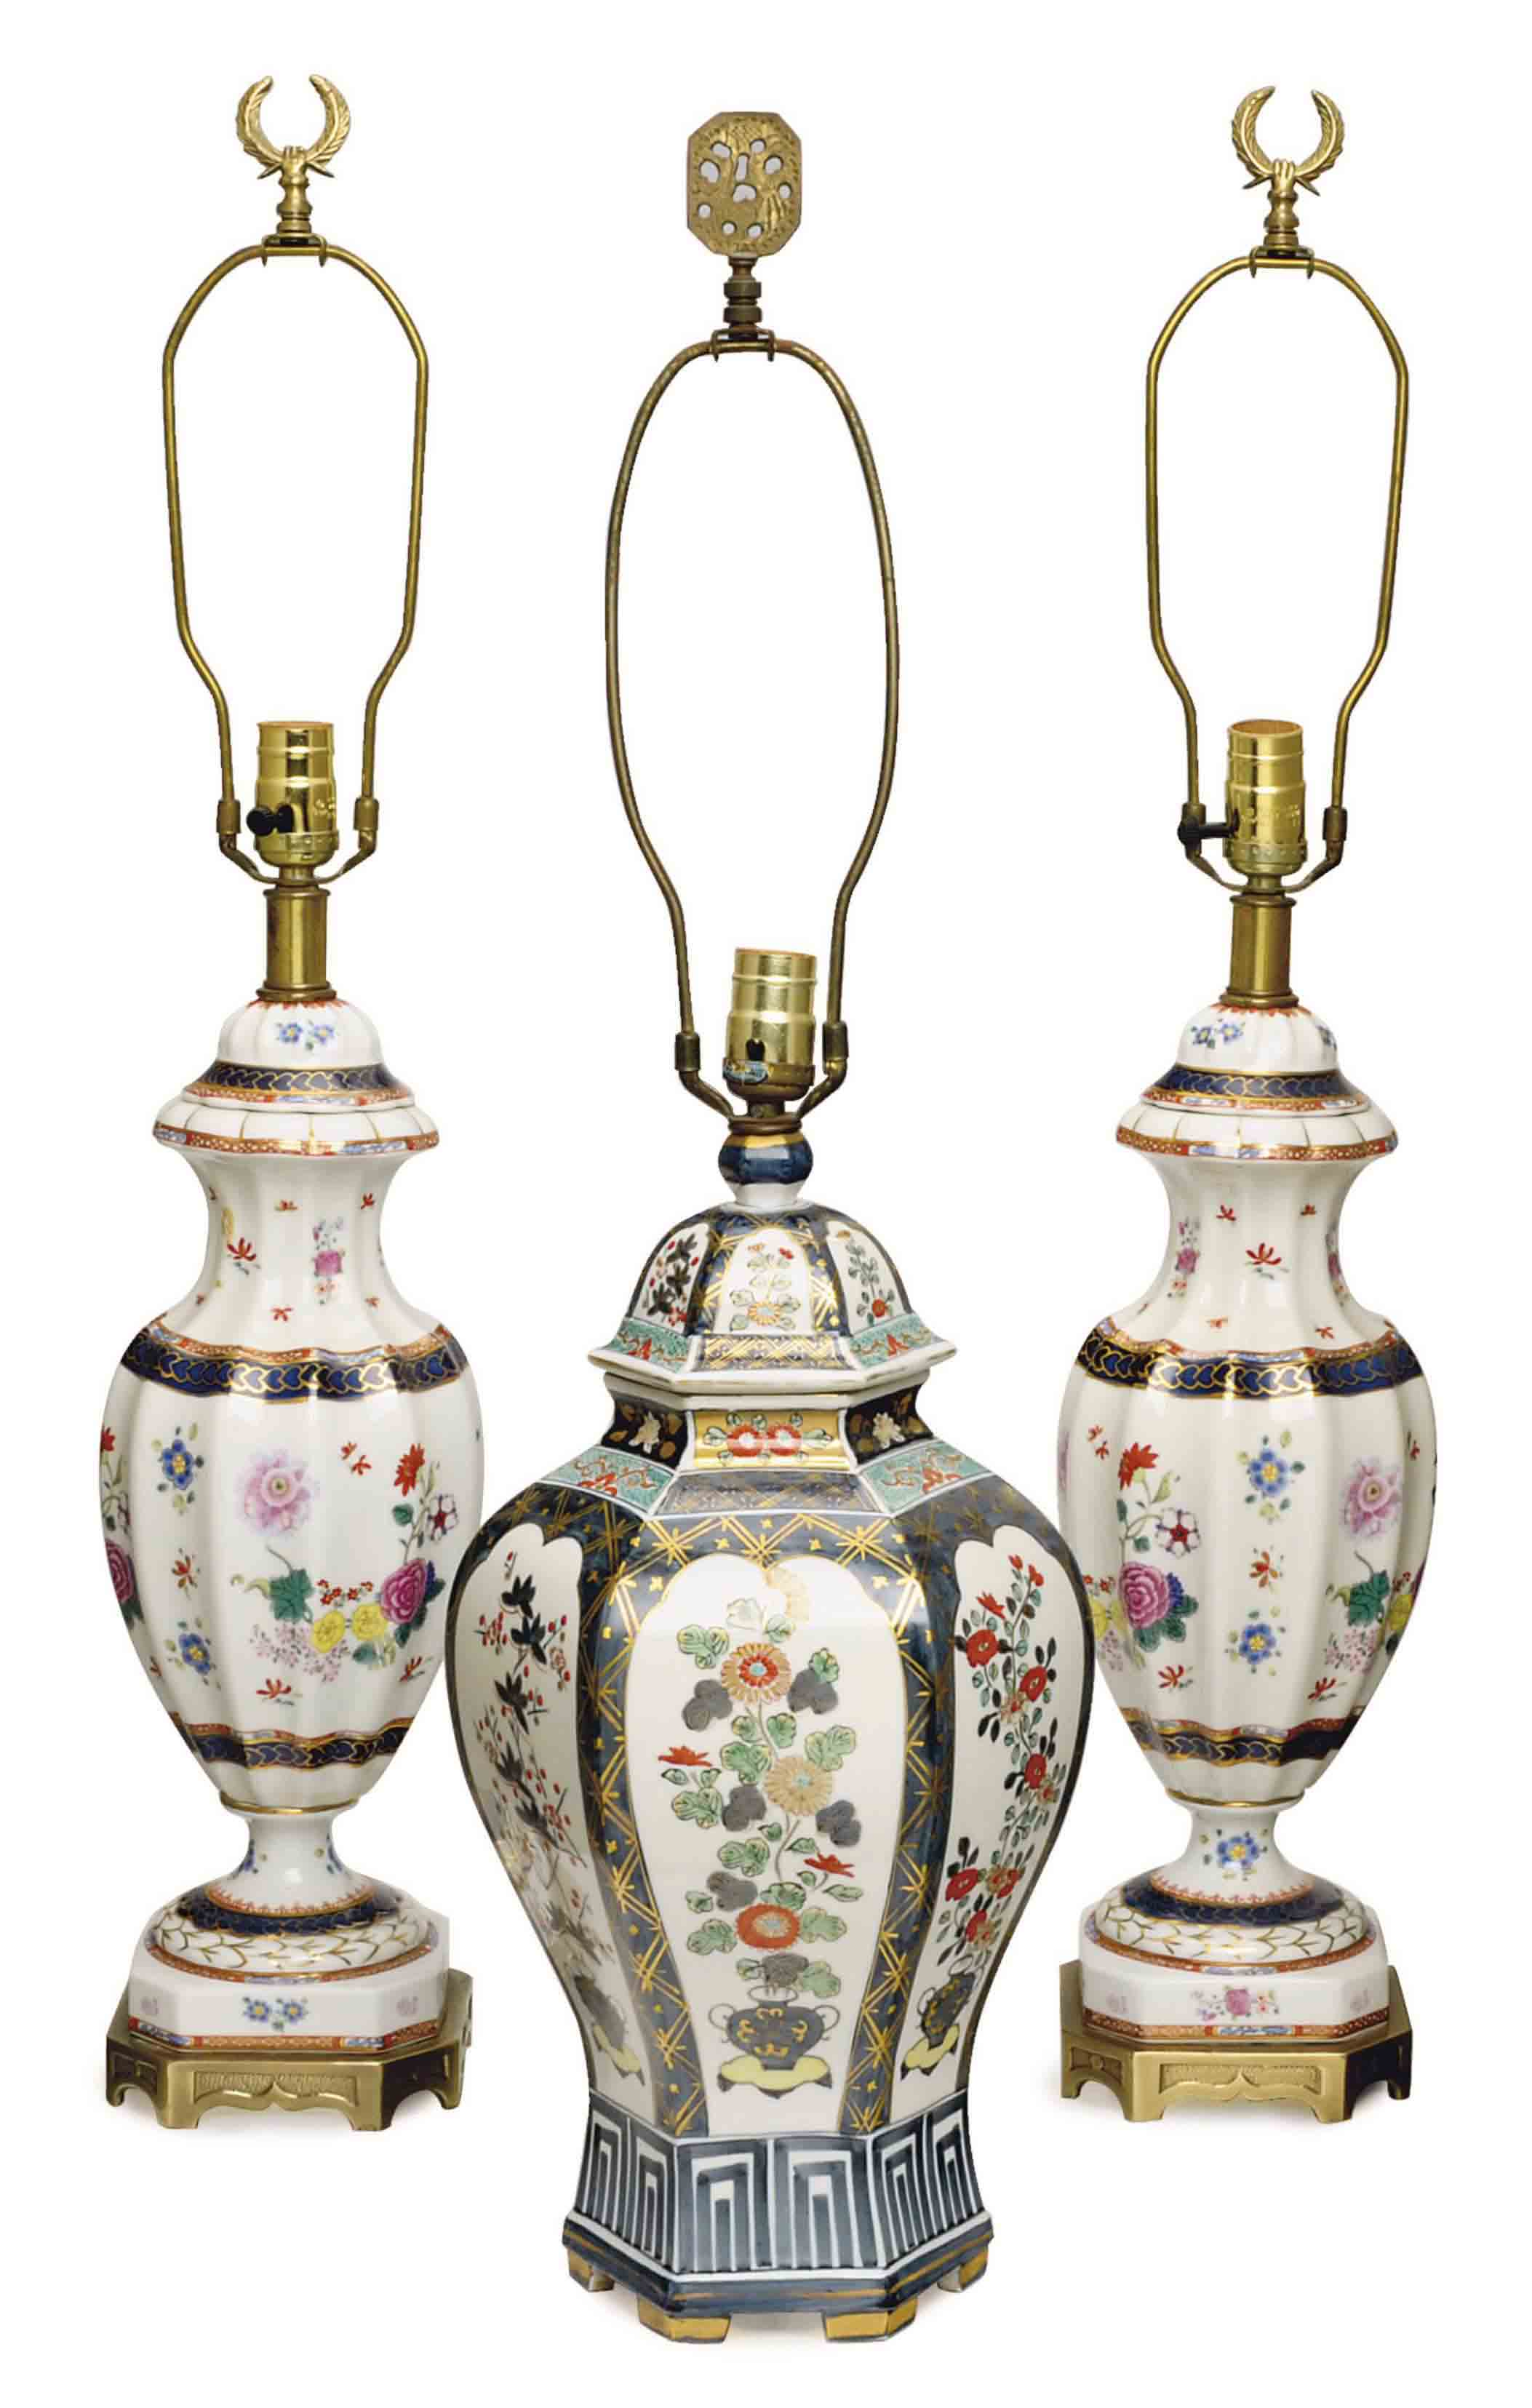 A GROUP OF THREE CHINESE GILT DECORATED PORCELAIN JARS AND COVERS, NOW MOUNTED AS LAMPS,